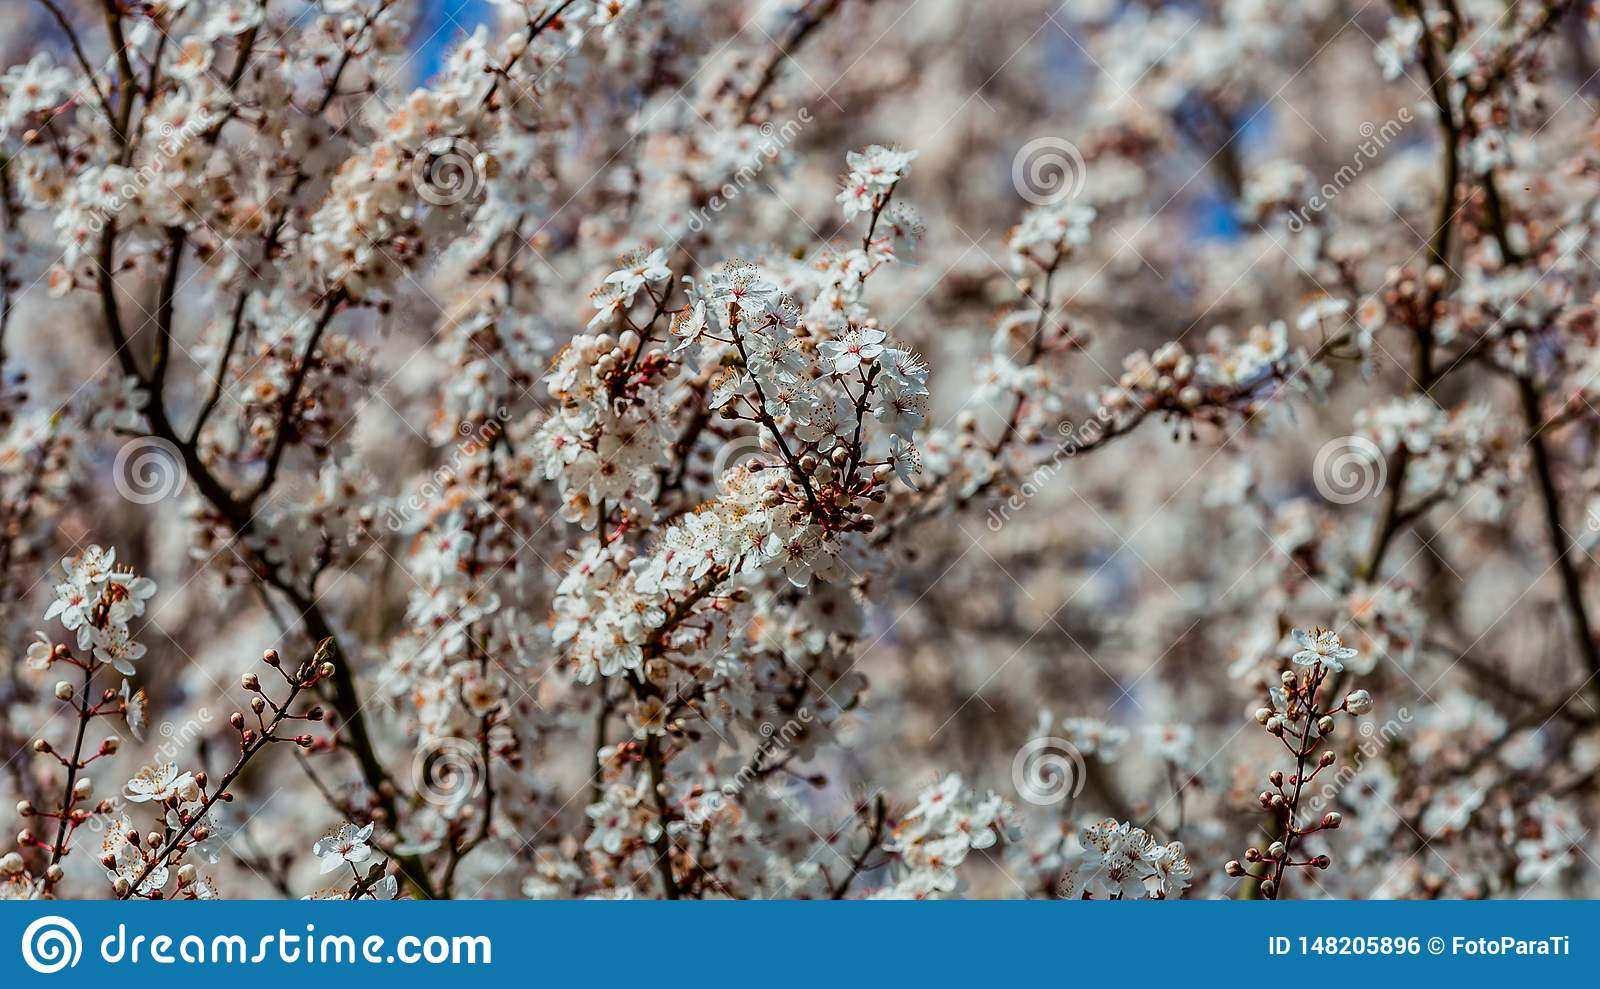 Close up the branches of a cherry tree in full bloom with its white flowers